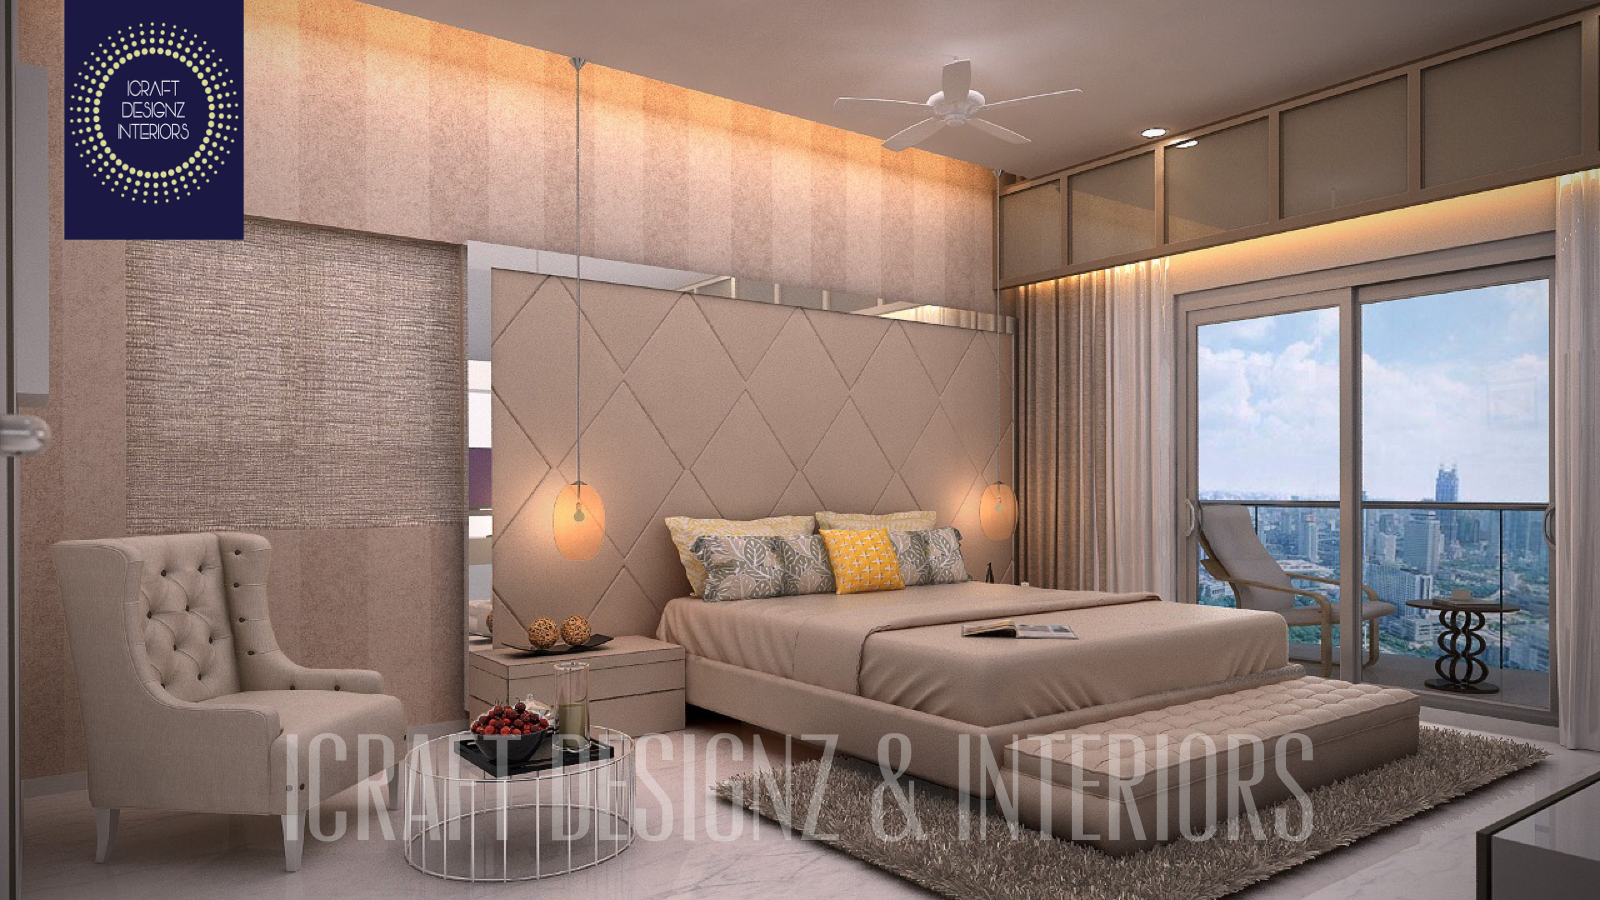 Pin By Icraft Designz And Interiors On 3bhk Flat Interior Design